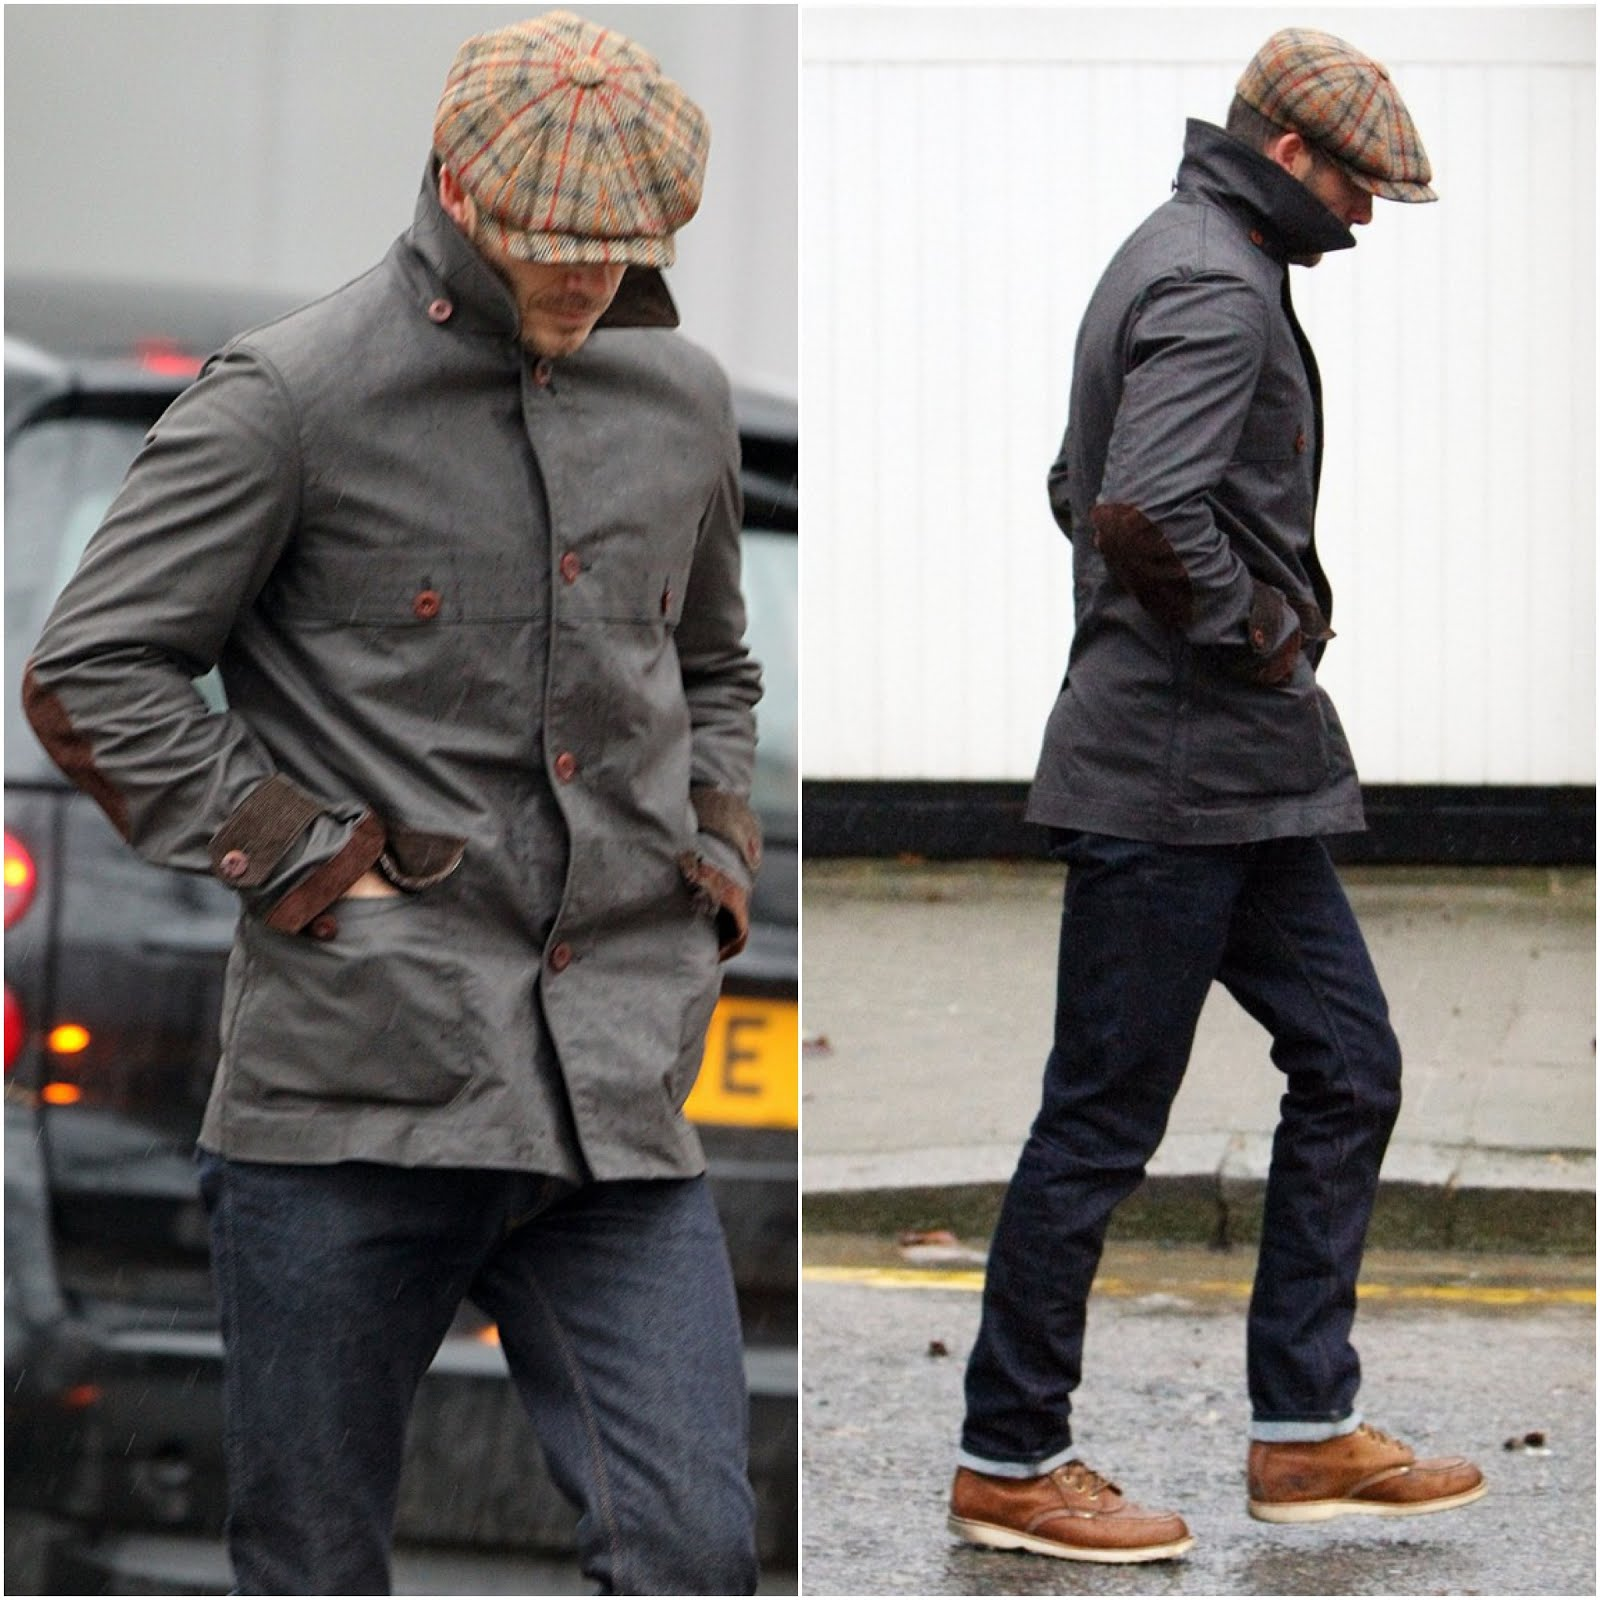 00O00 Menswear blog David Beckham in Junya Watanabe jacket - Out and about in London